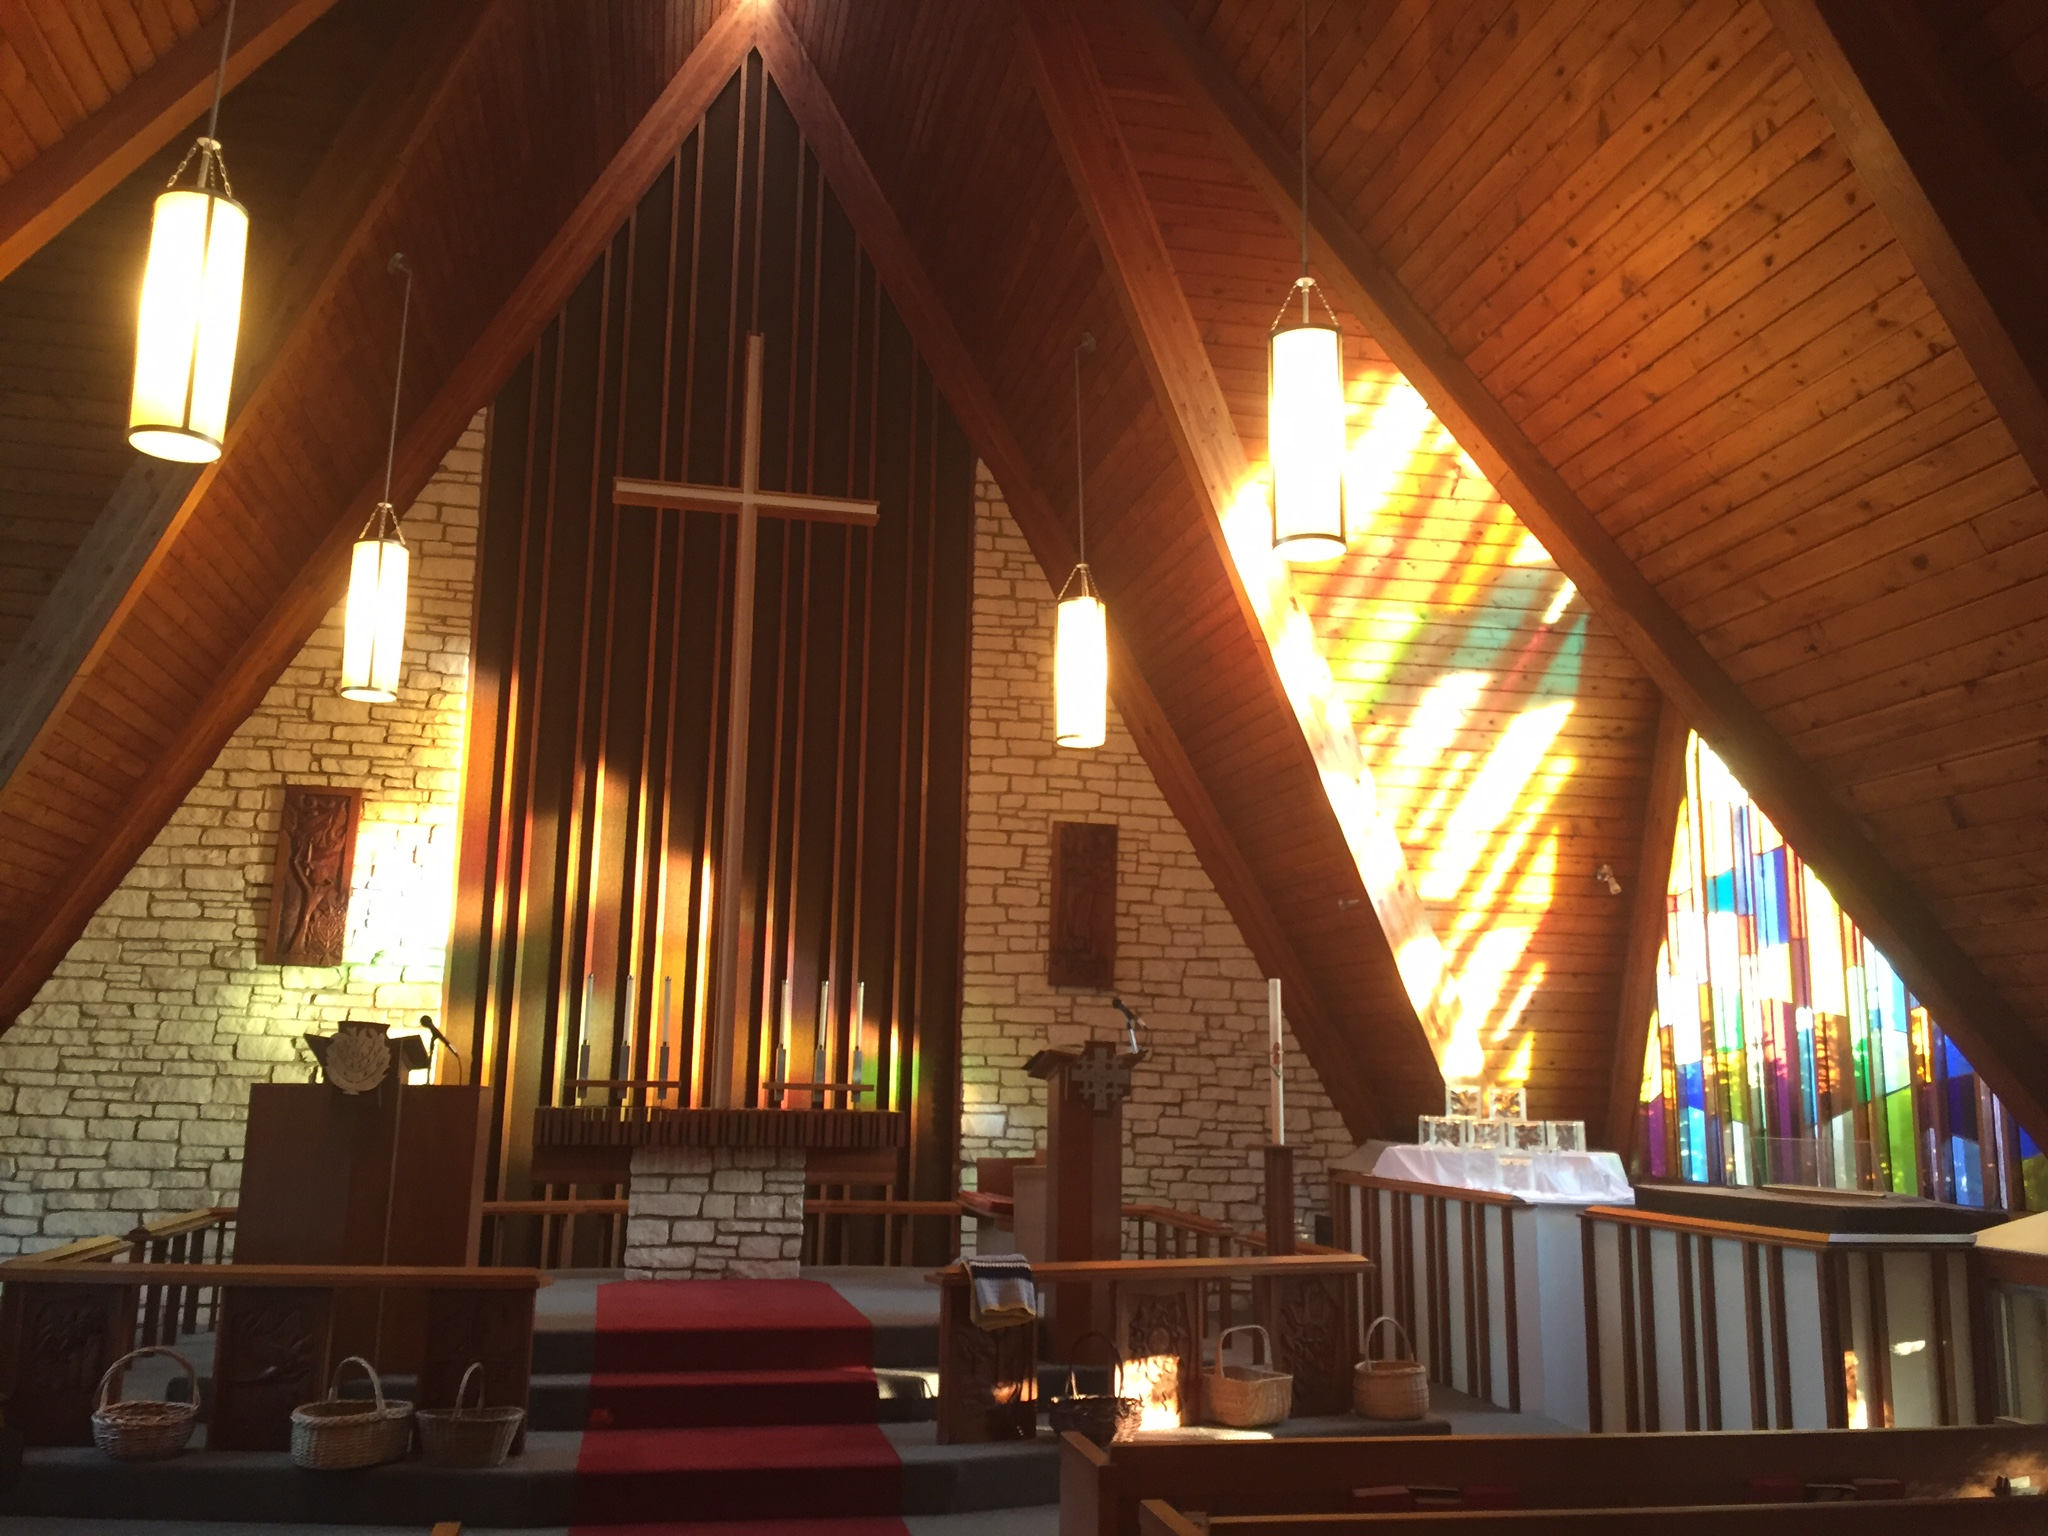 sanctuary with stained glass light.JPG